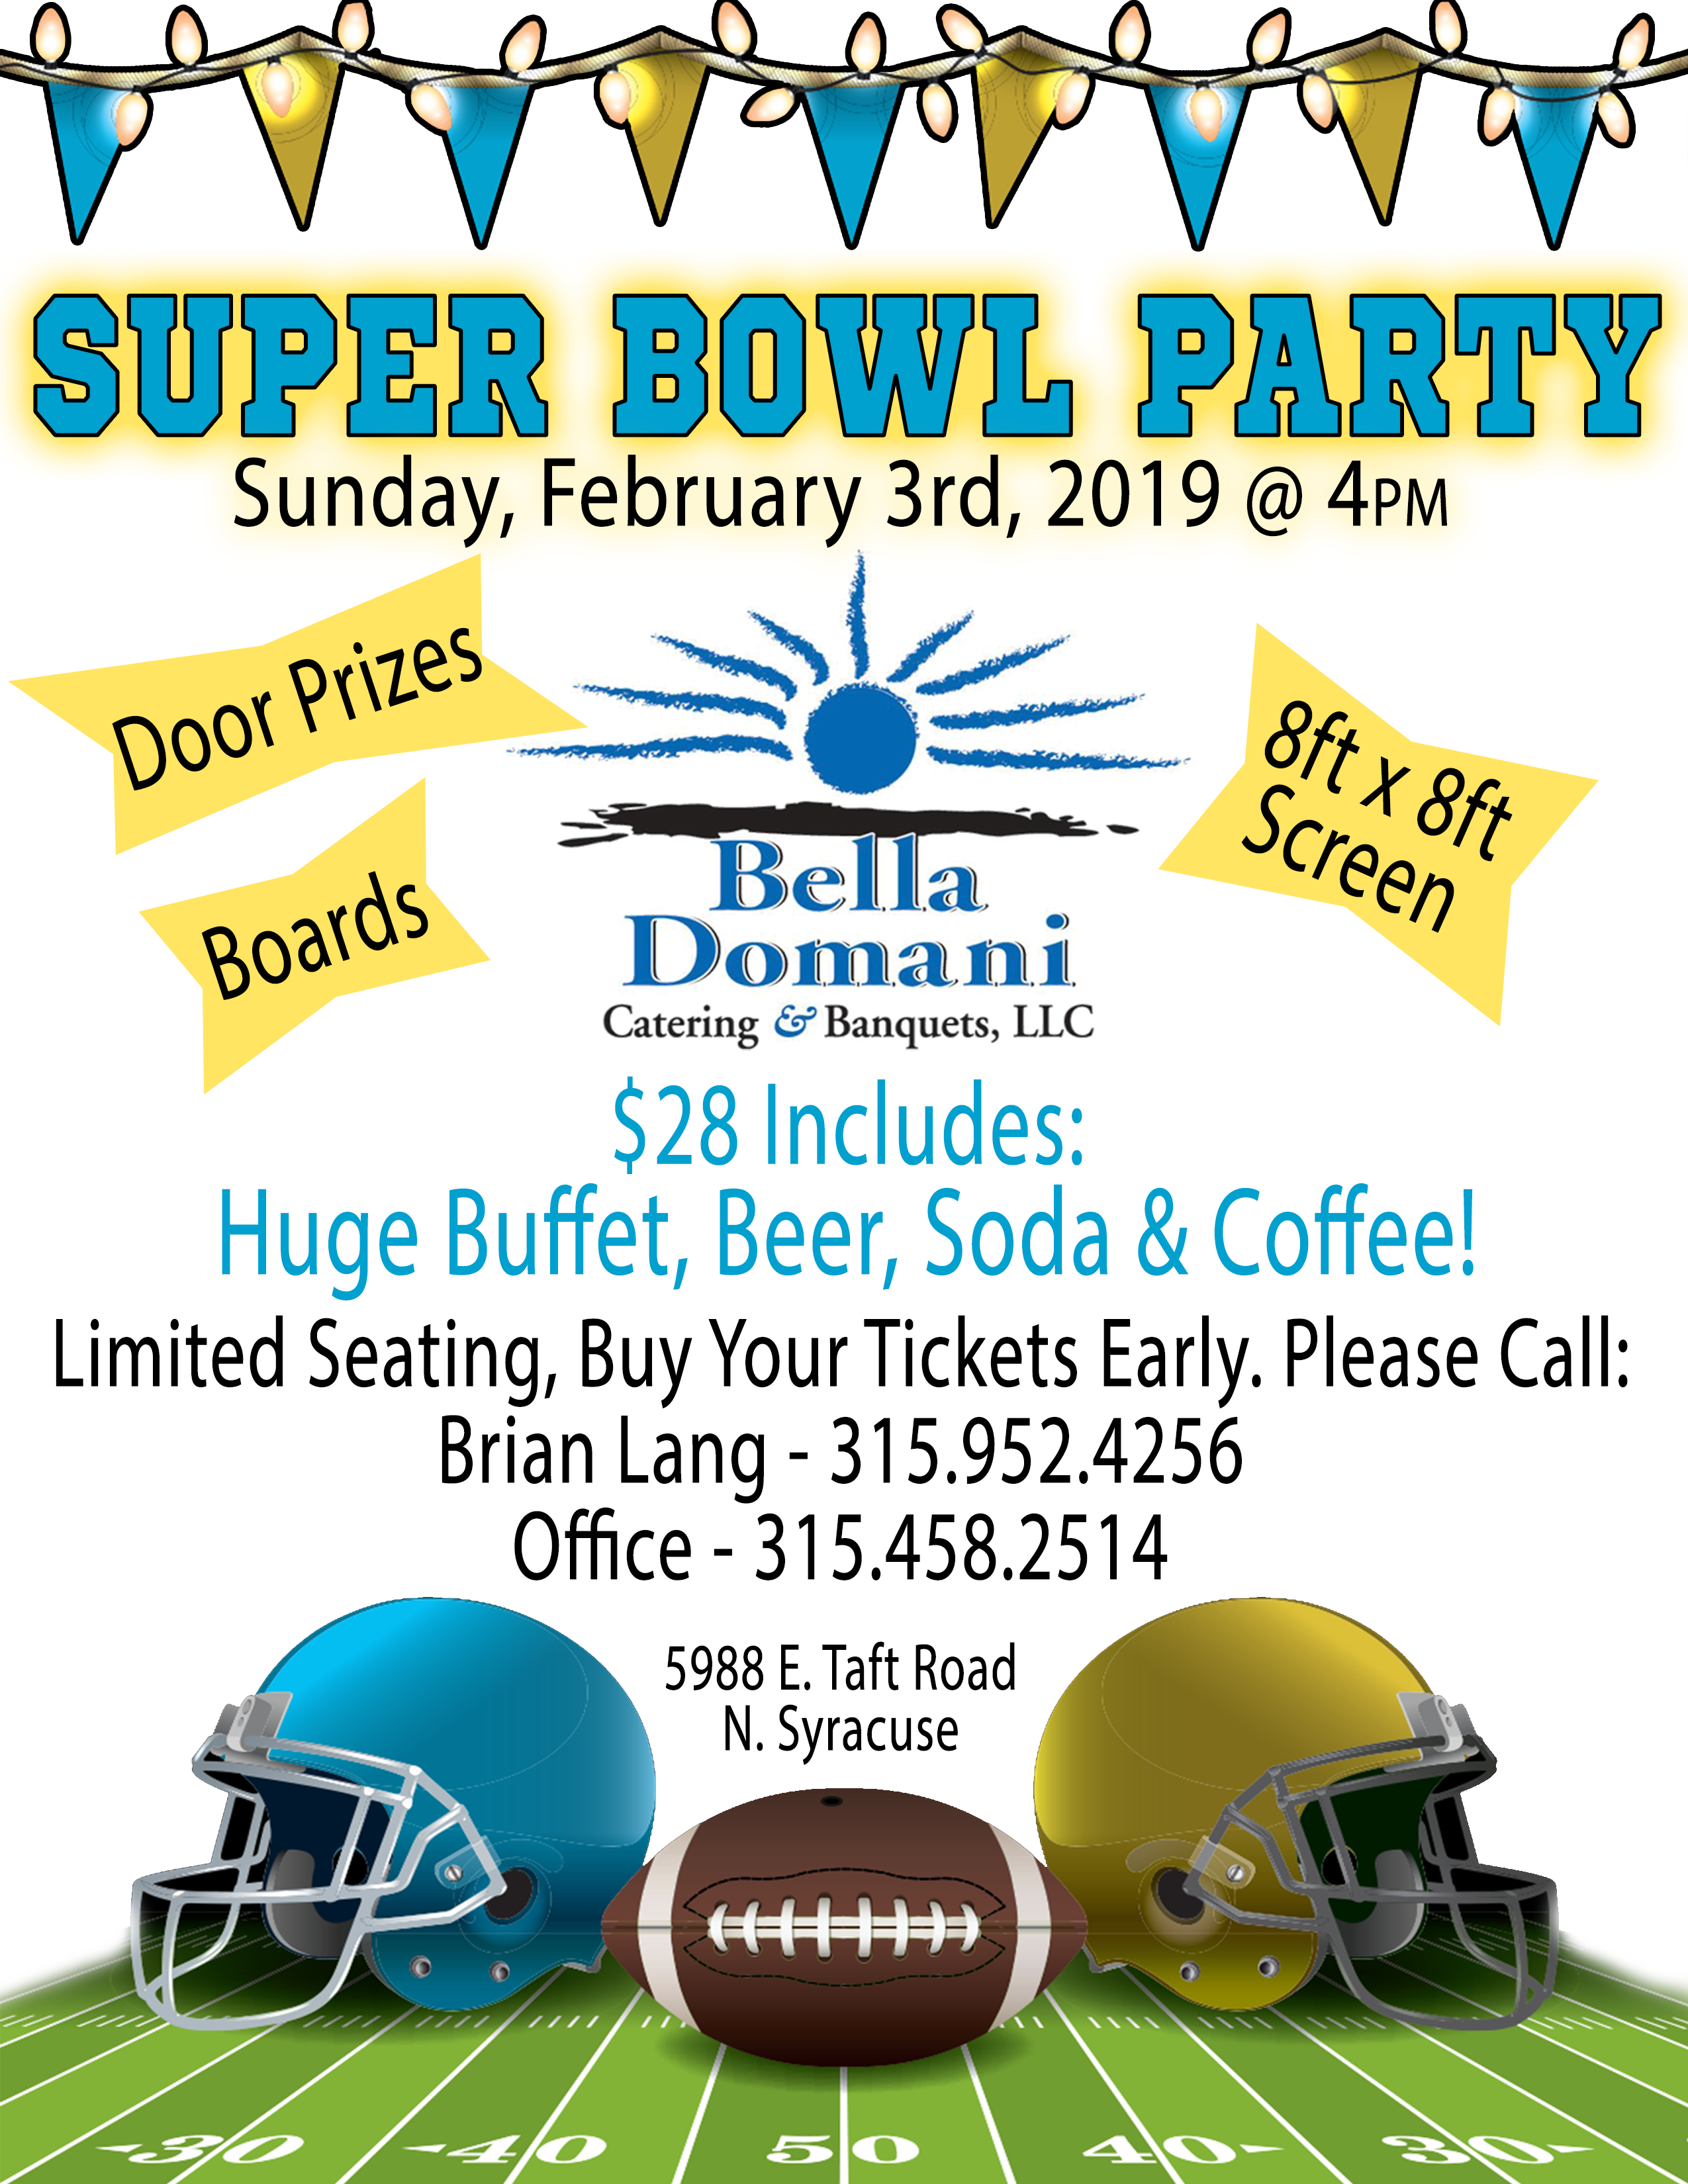 Superbowl Party | Sunday, February 2rd, 2019 @ 4pm | Door Prizes, Boards, 8ftx8ft Screen| Bella Domani Logo | $28 Includes: Huge Buffet, Beer, Soda, & Coffee! | Limited Seating, Buy Your Tickets Early. Pleaes Call: Brian Lang - 315-952-4256, Office - 315-458-2514 | 5988 E. Taft Road N. Syracuse | Image of Football Helmets